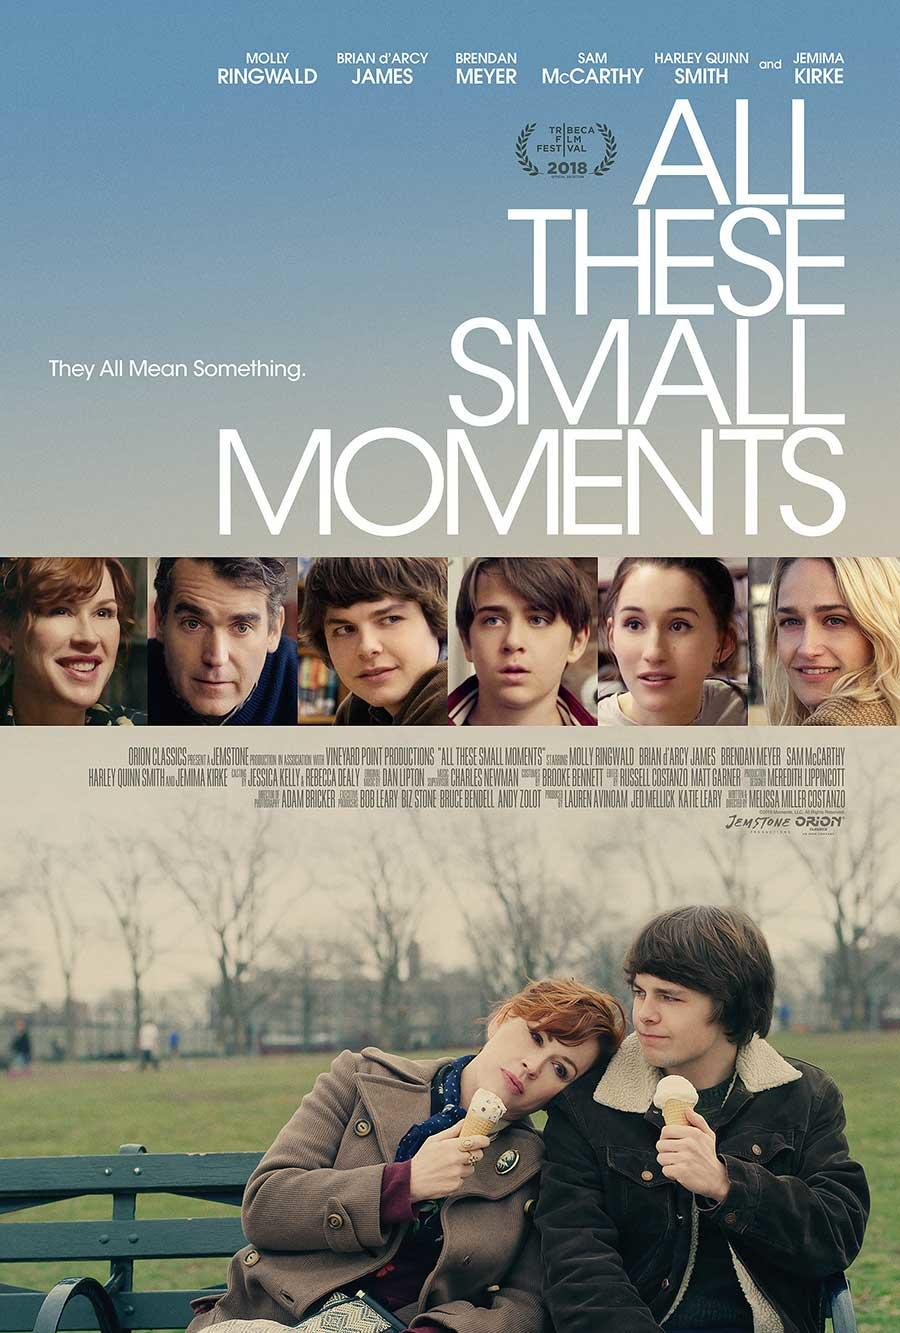 All These Small Moments poster art